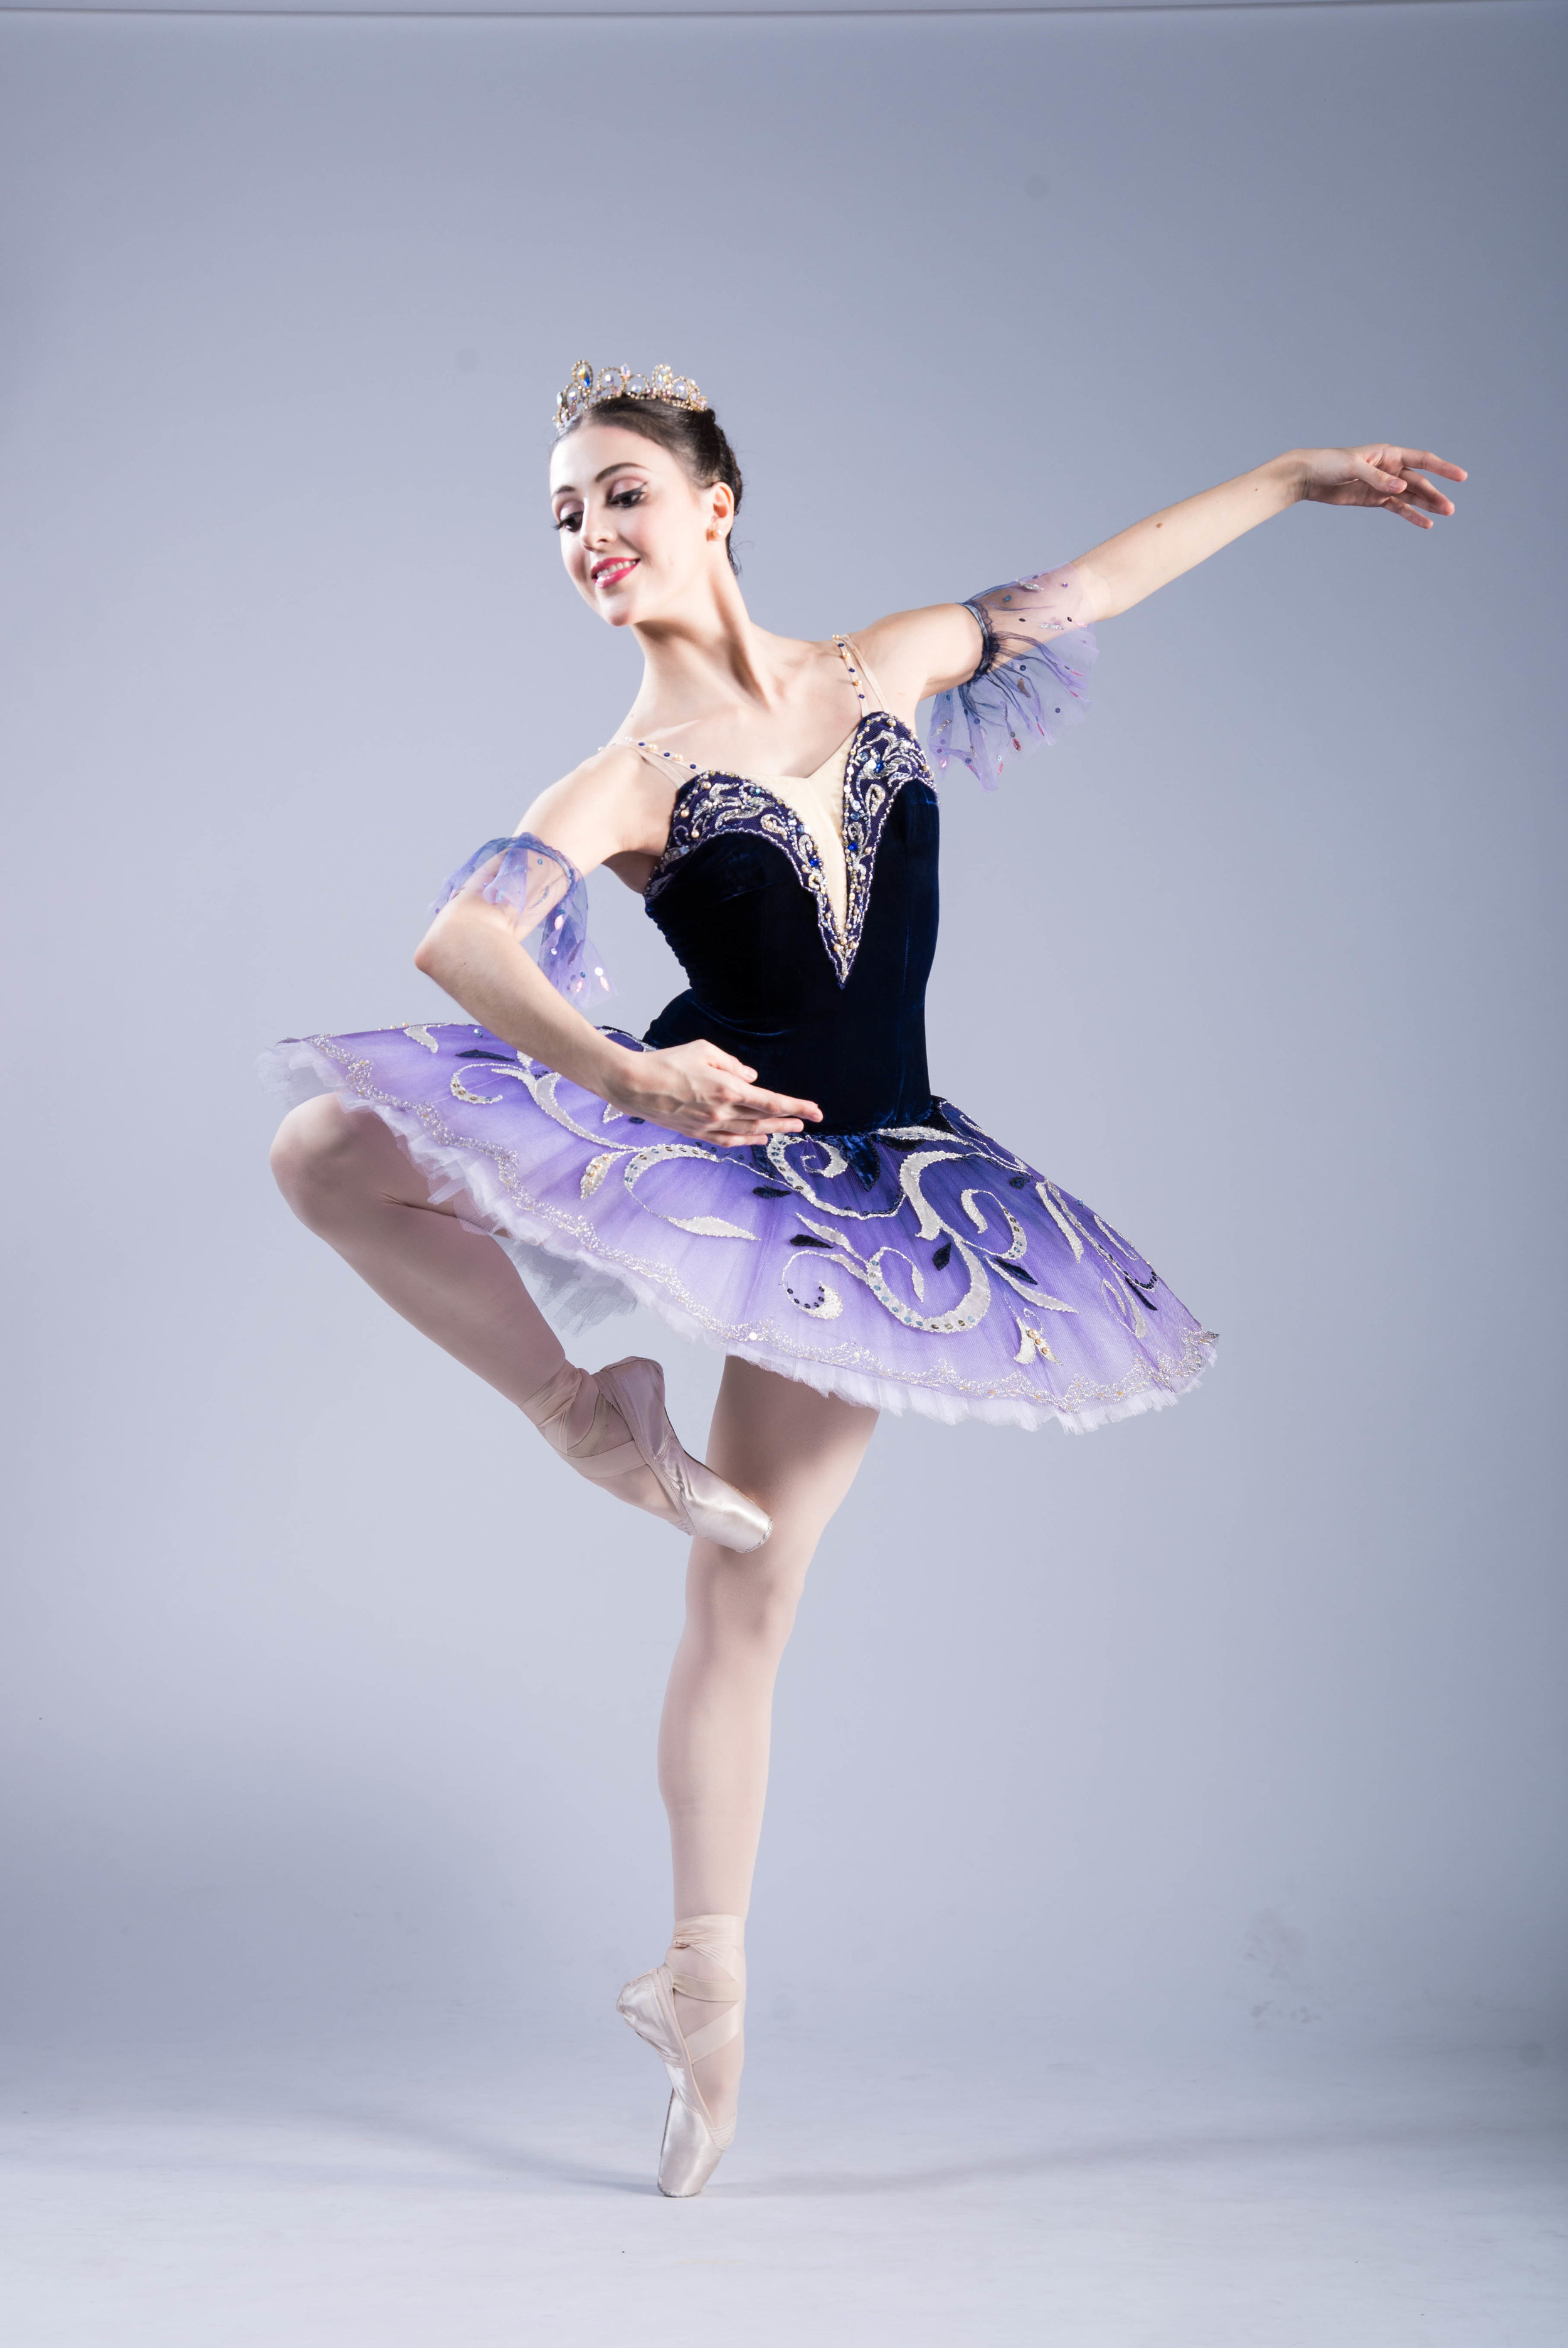 Washington National Ballet's Katherine Barkman